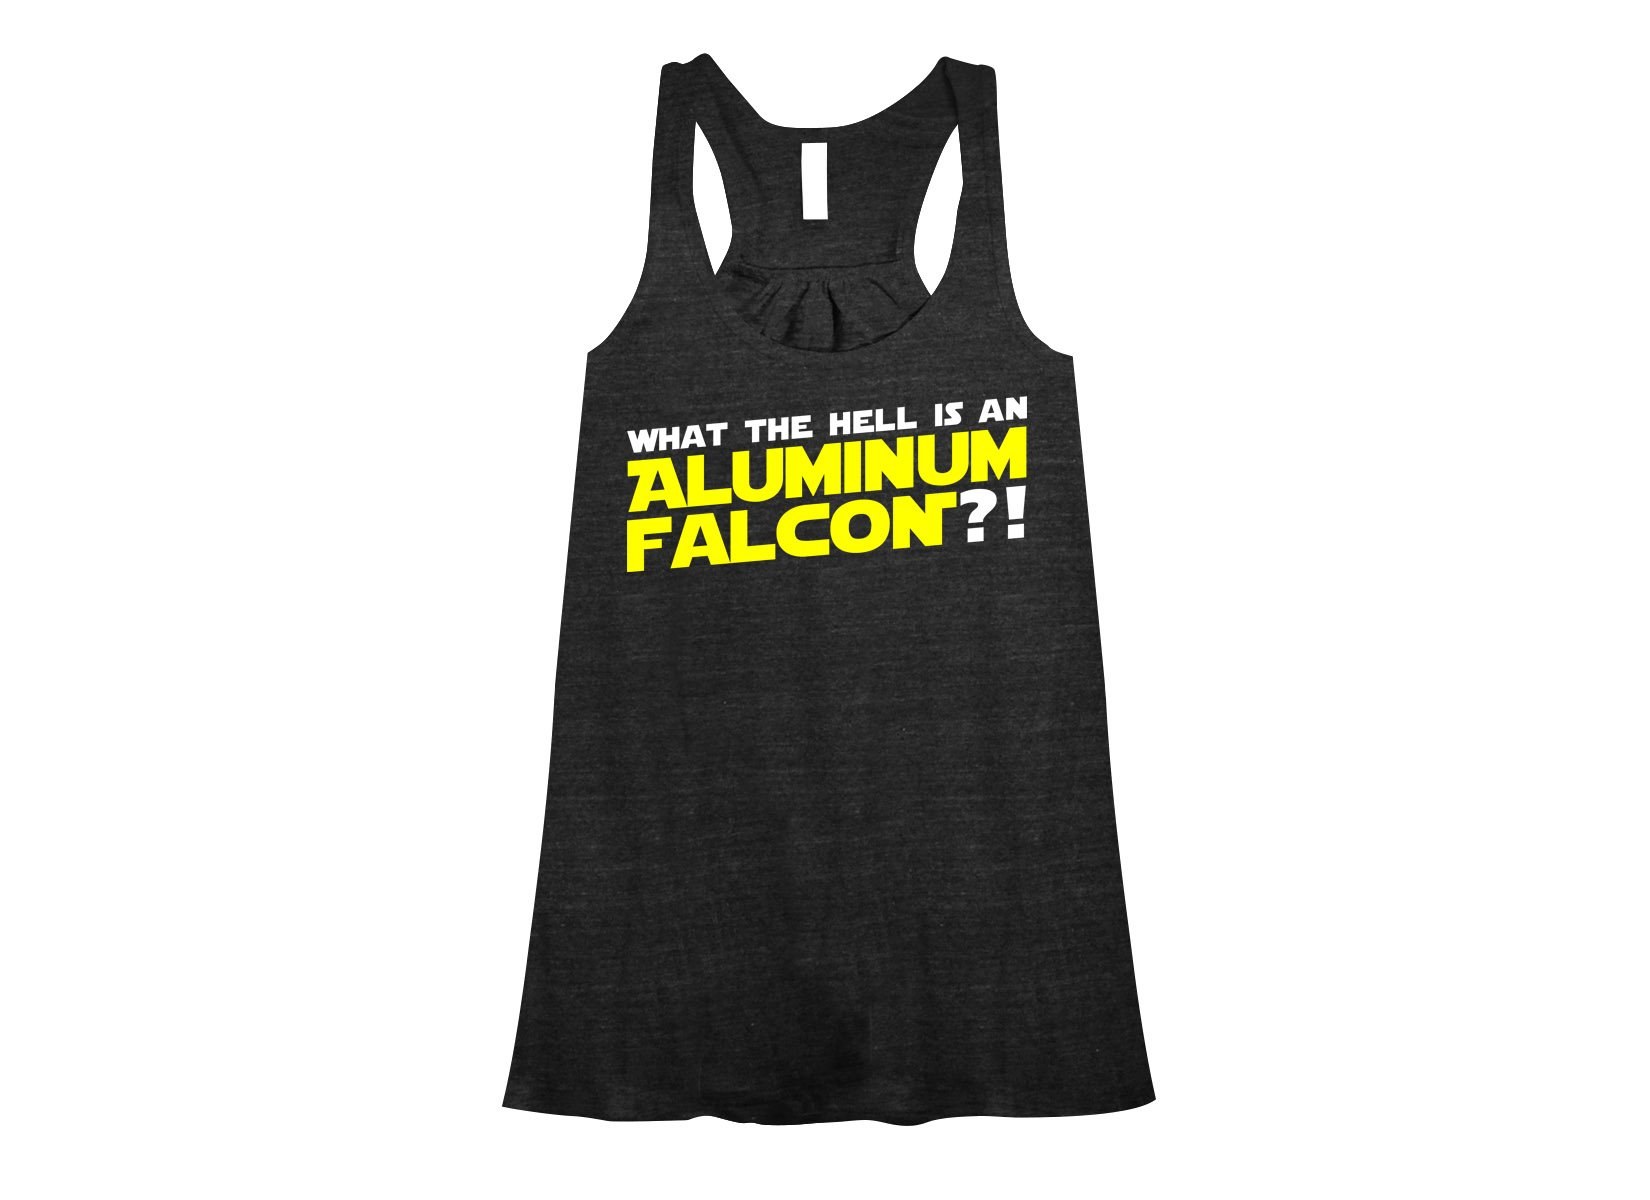 Aluminum Falcon on Womens Tanks T-Shirt